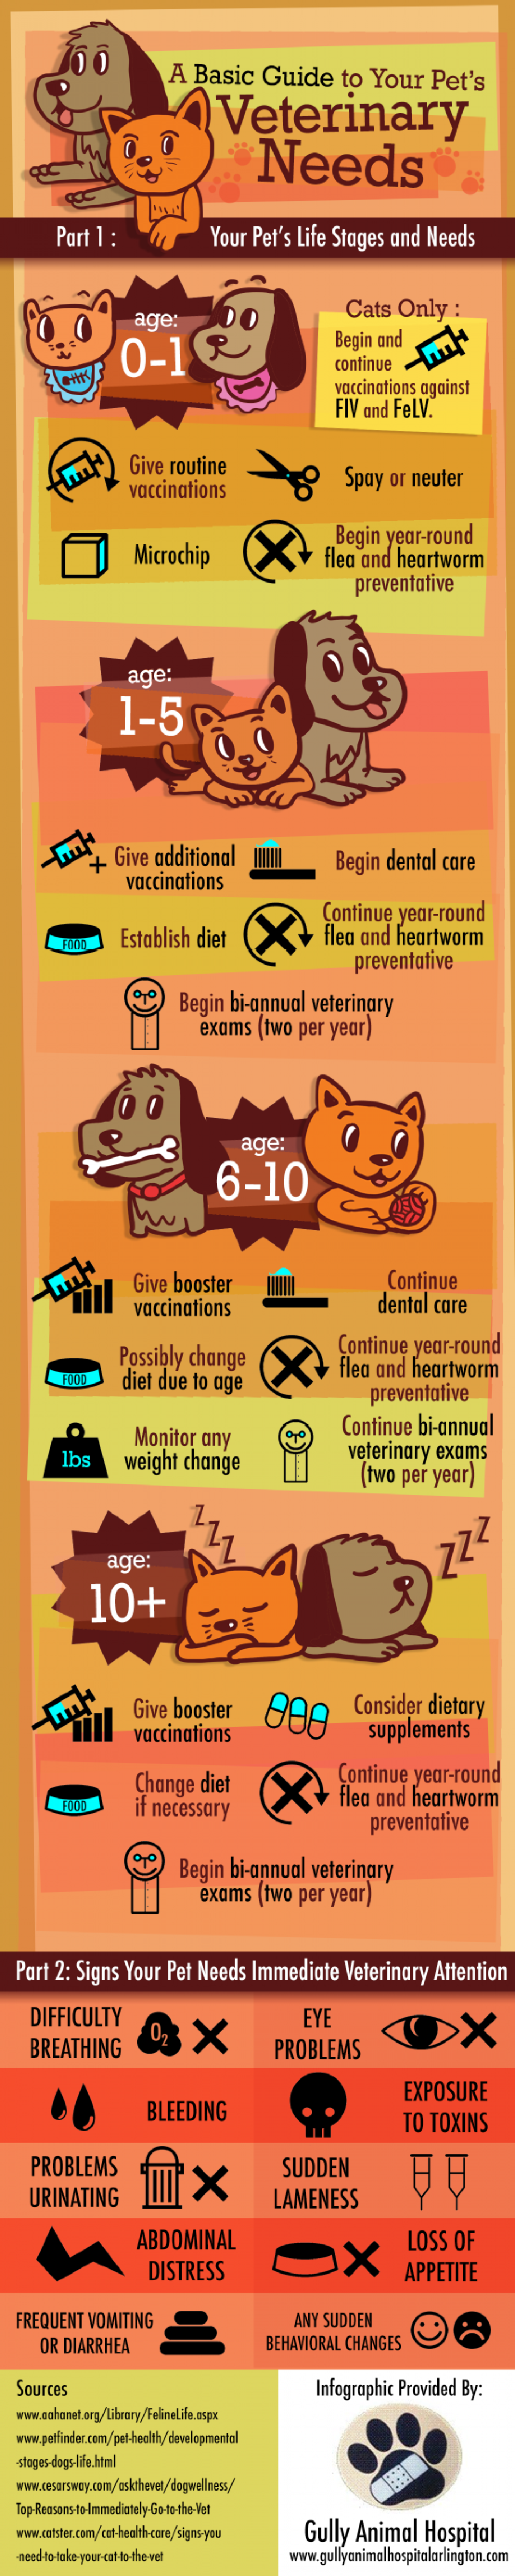 A Basic Guide to Your Pet's Veterinary Needs  Infographic